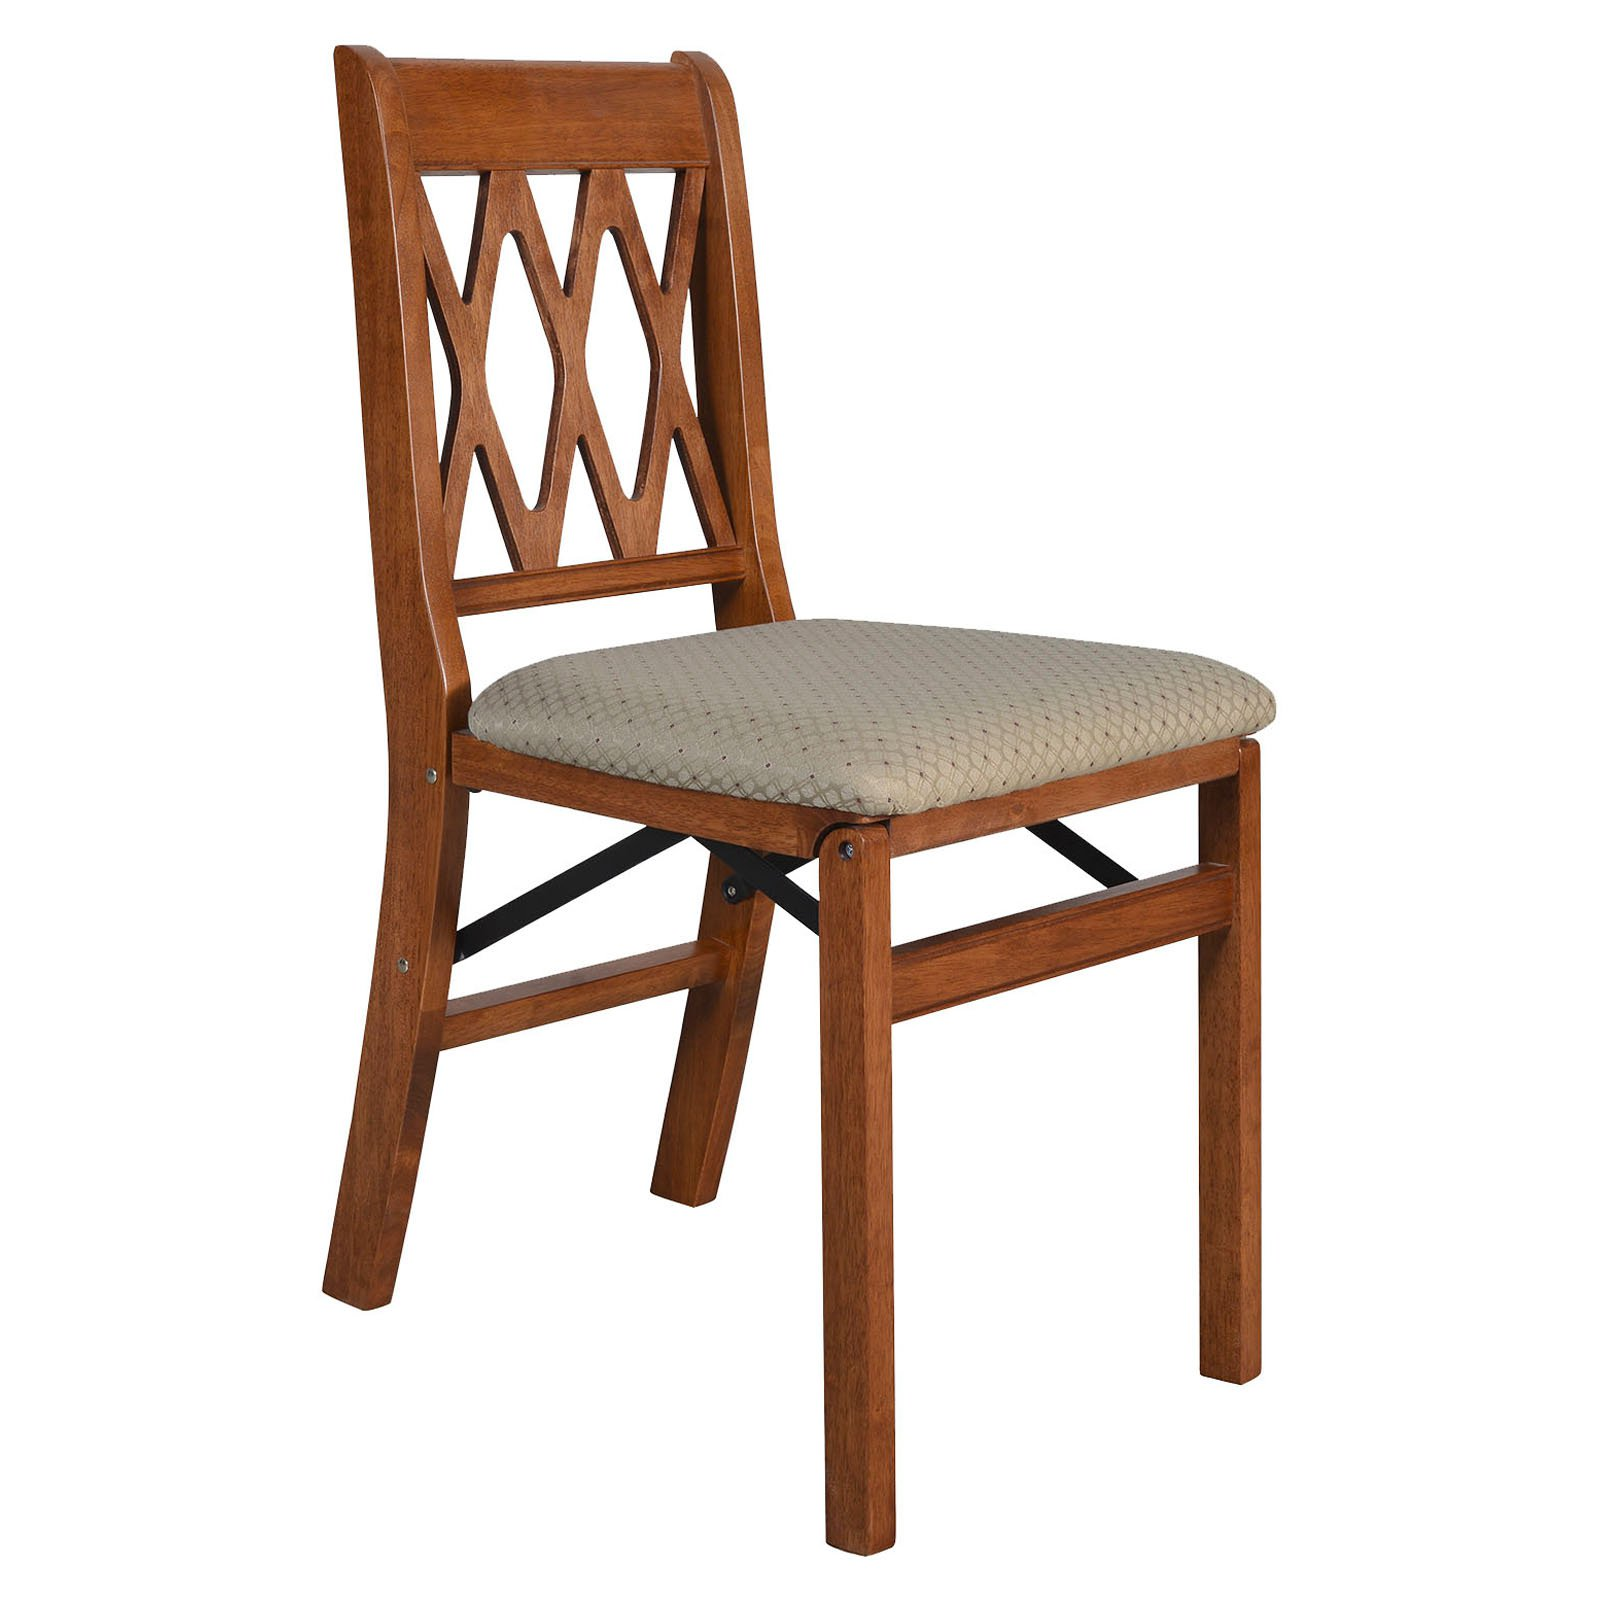 Stakmore 0225.6H Lattice Back Folding Chair (Set of 2)